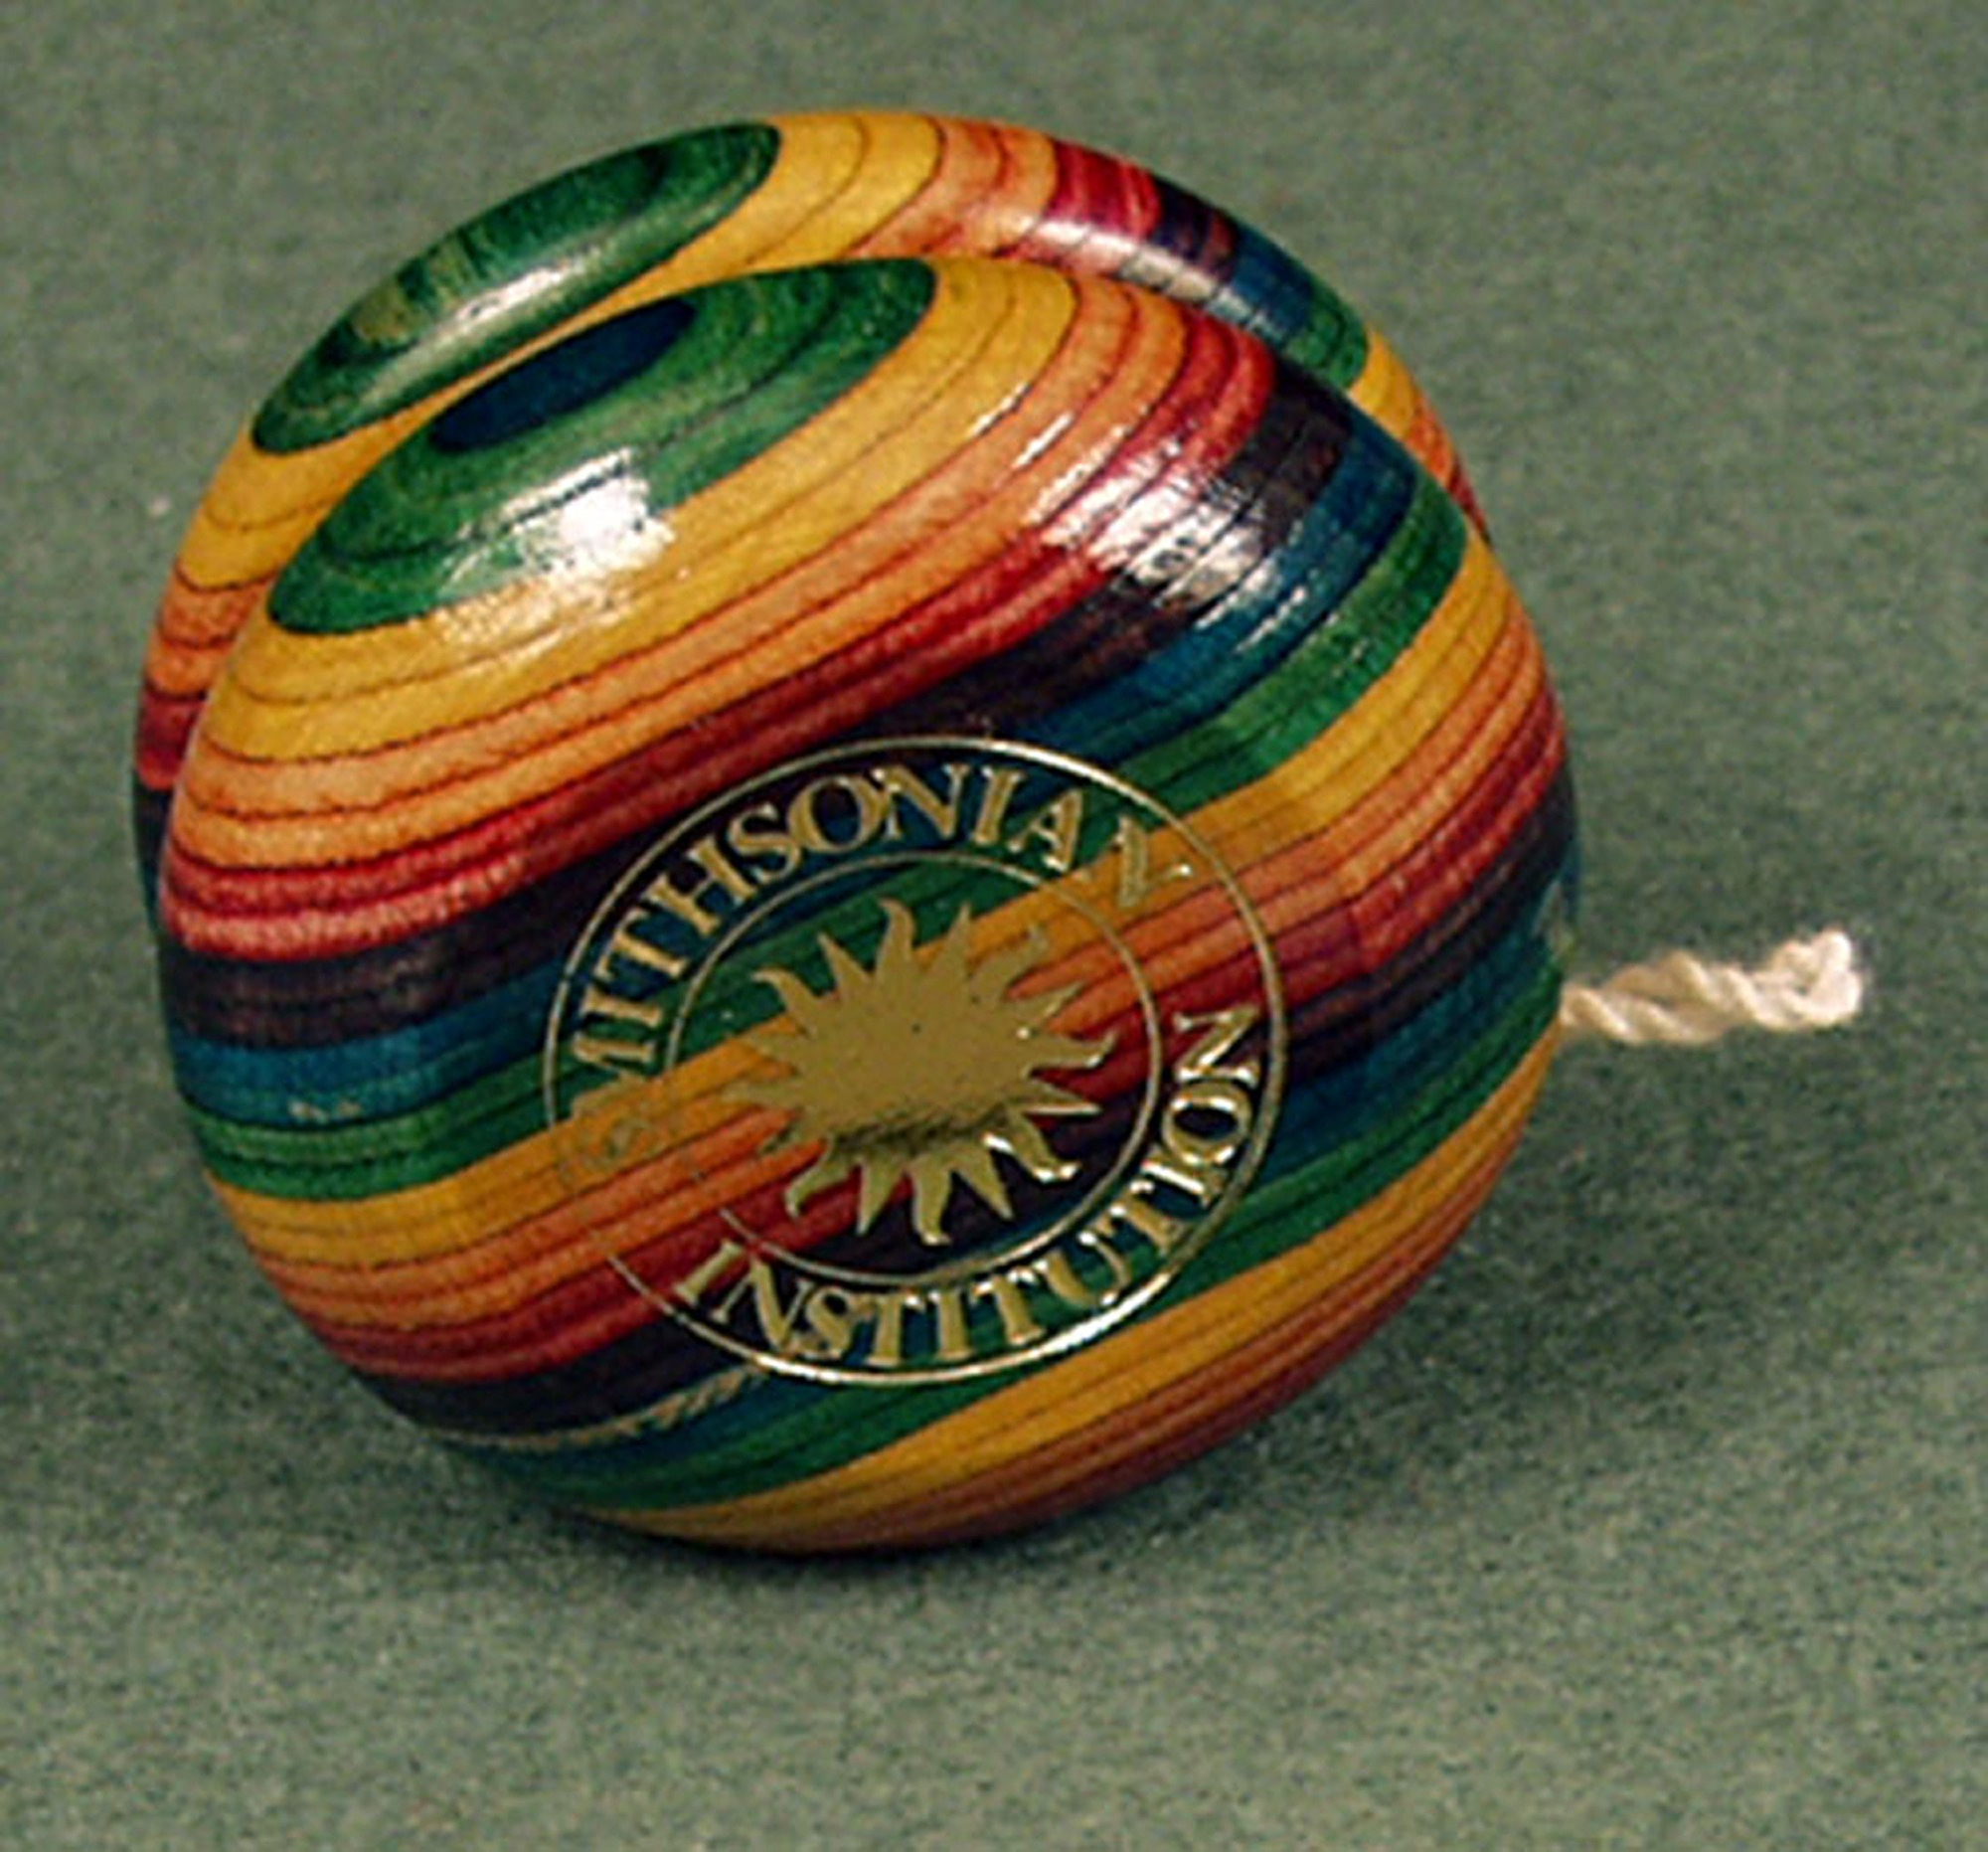 Wooden yo-yo with rainbow stripes and a golden Smithsonian logo